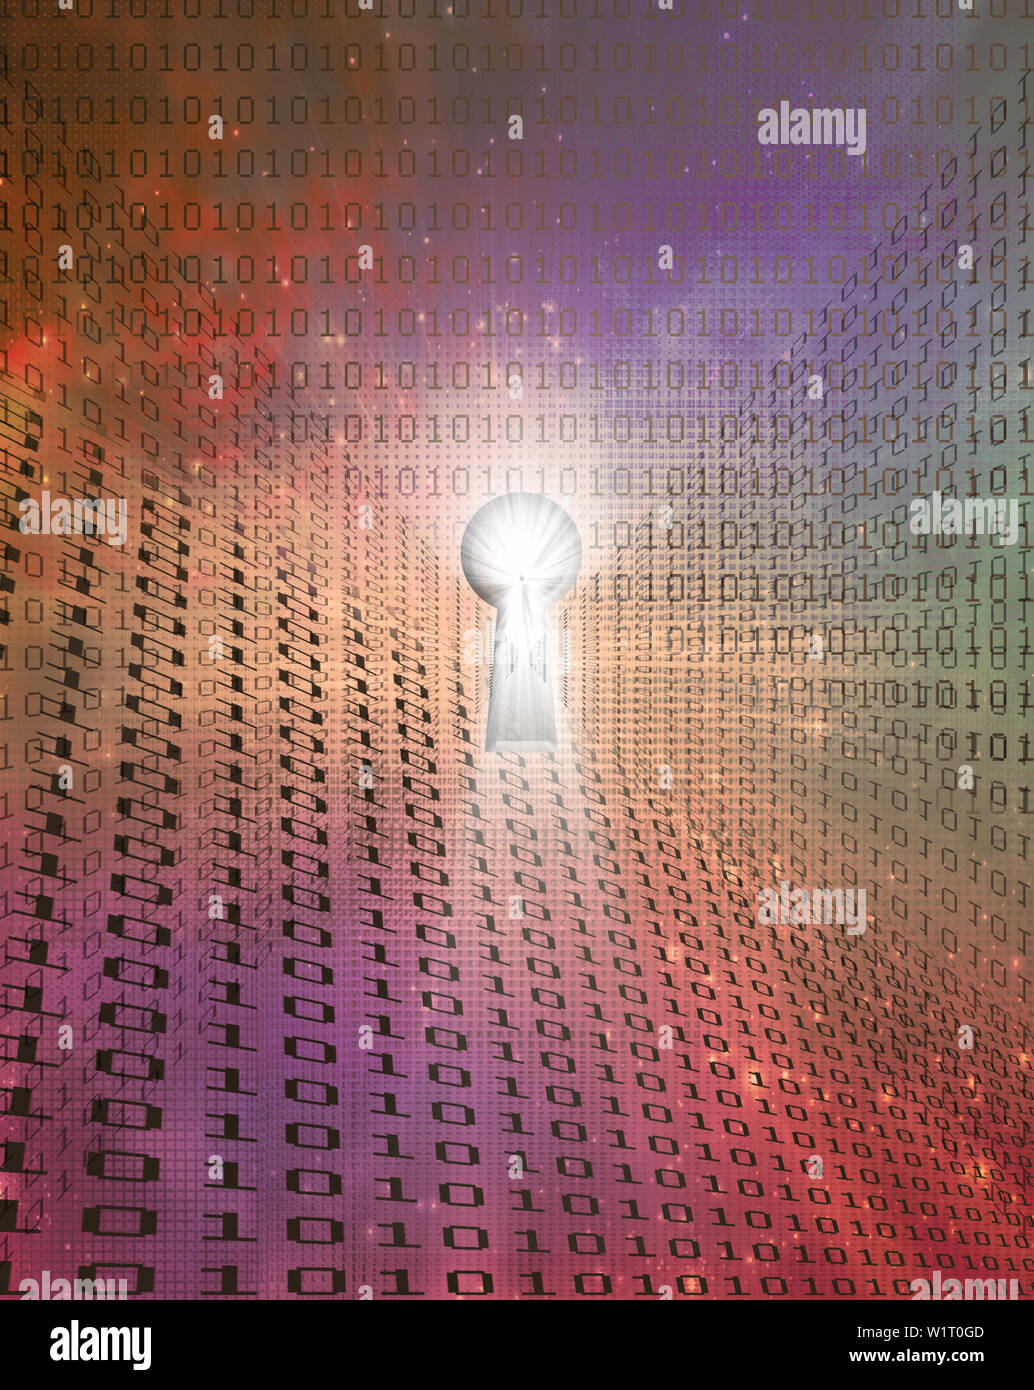 Modern art. Keyhole and binary code on a background - Stock Image